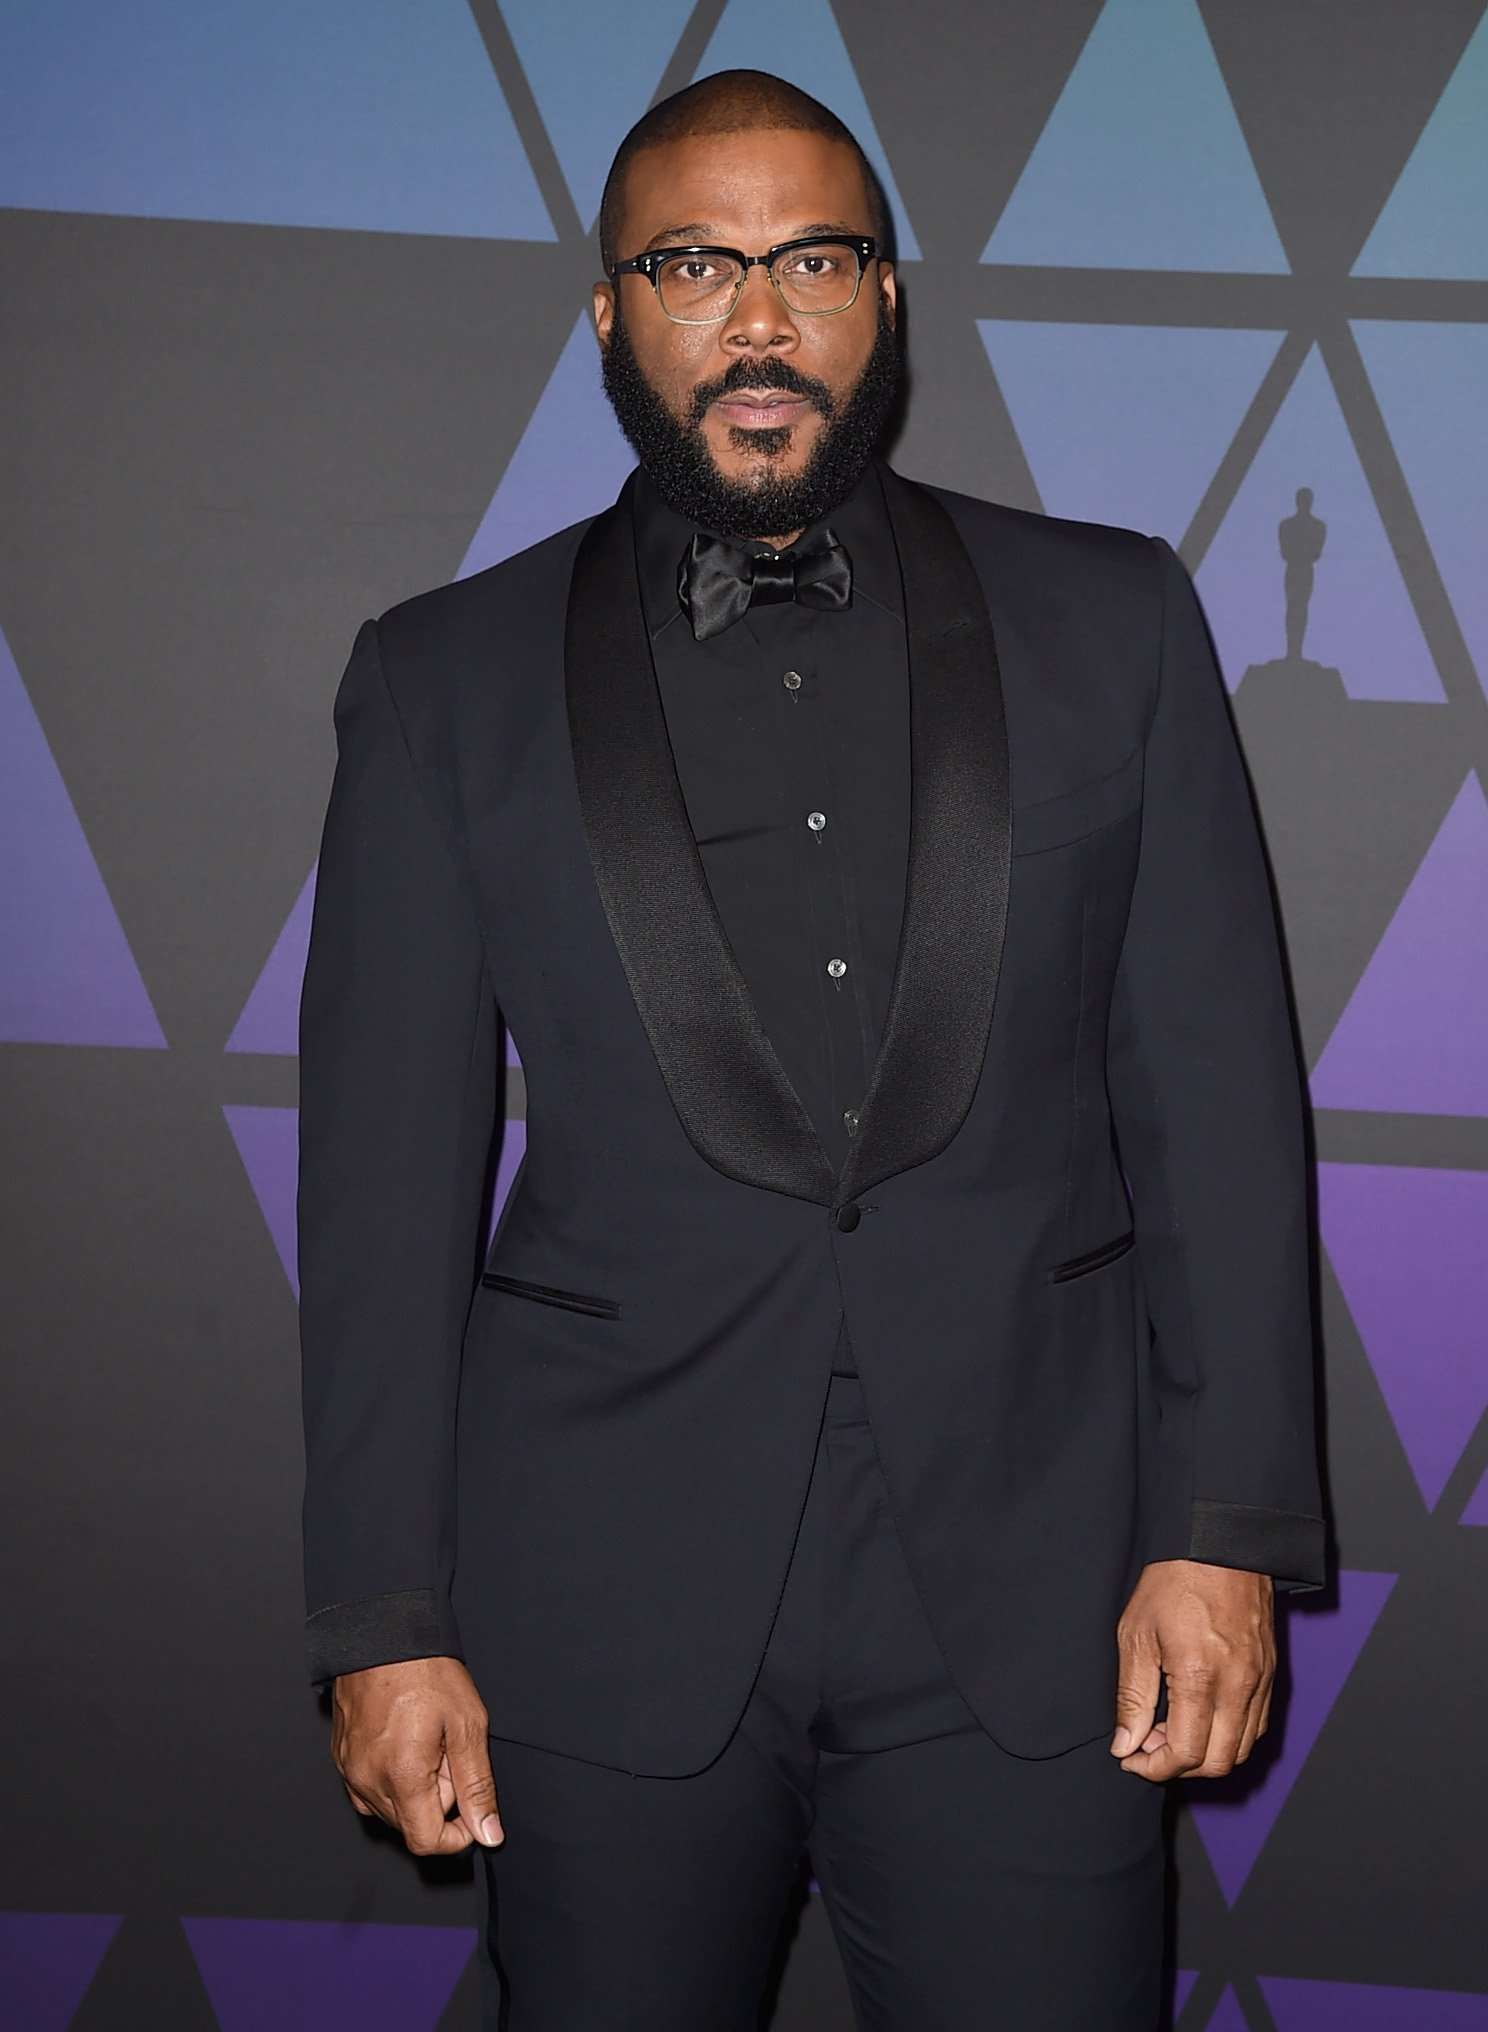 Tyler Perry at the 10th annual Governors Awards at The Ray Dolby Ballroom at Hollywood & Highland Center on November 18, 2018 | Photo: GettyImages